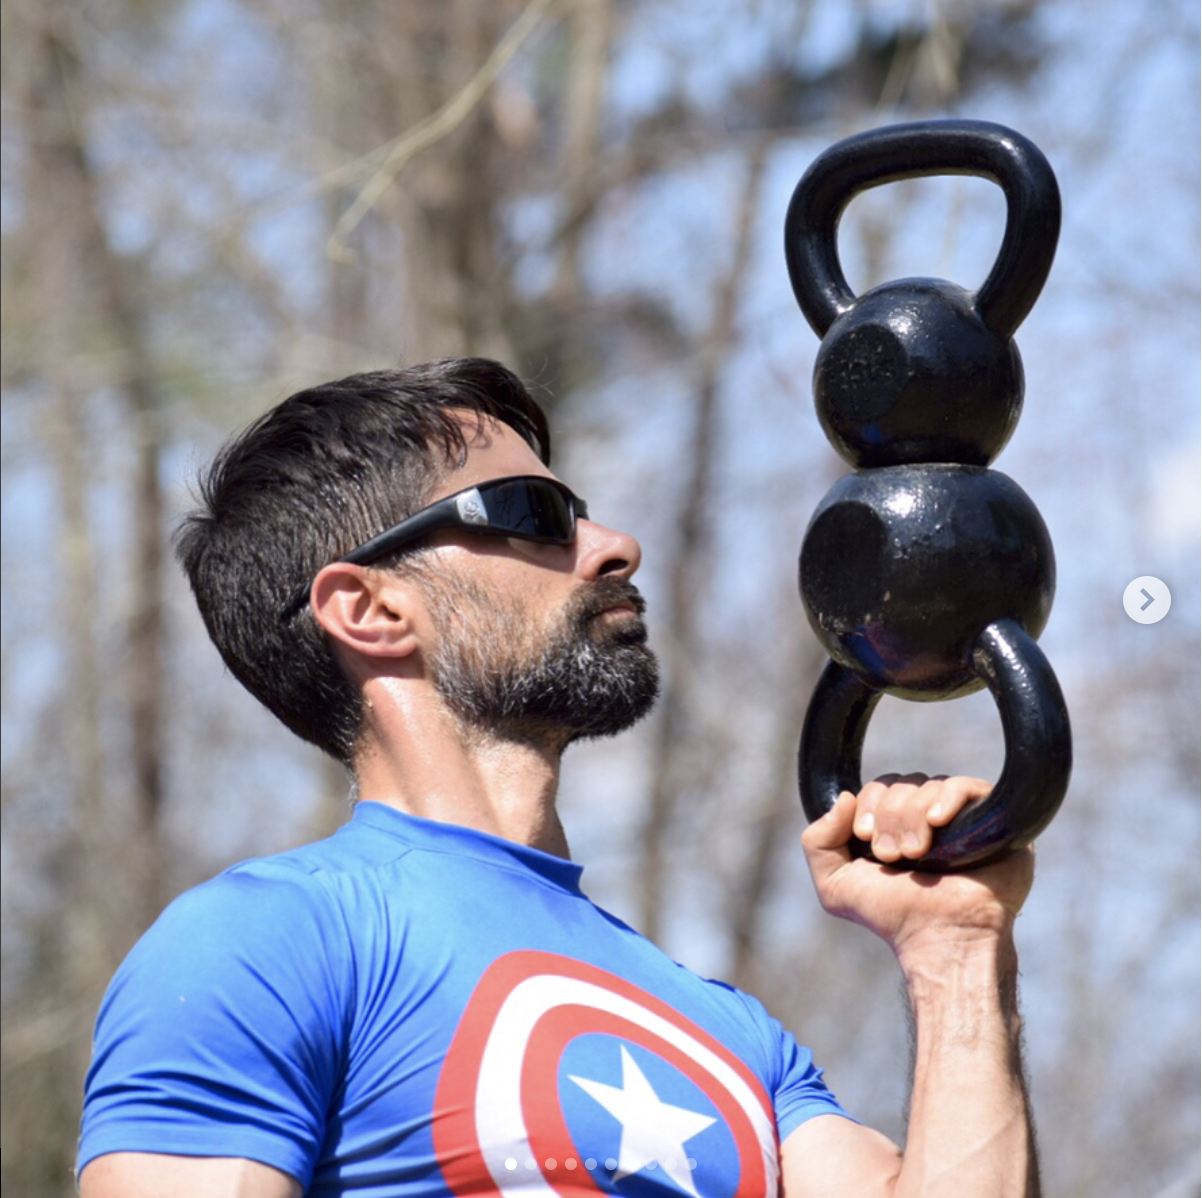 Kettlebell Training Benefits: On Point Sports Care